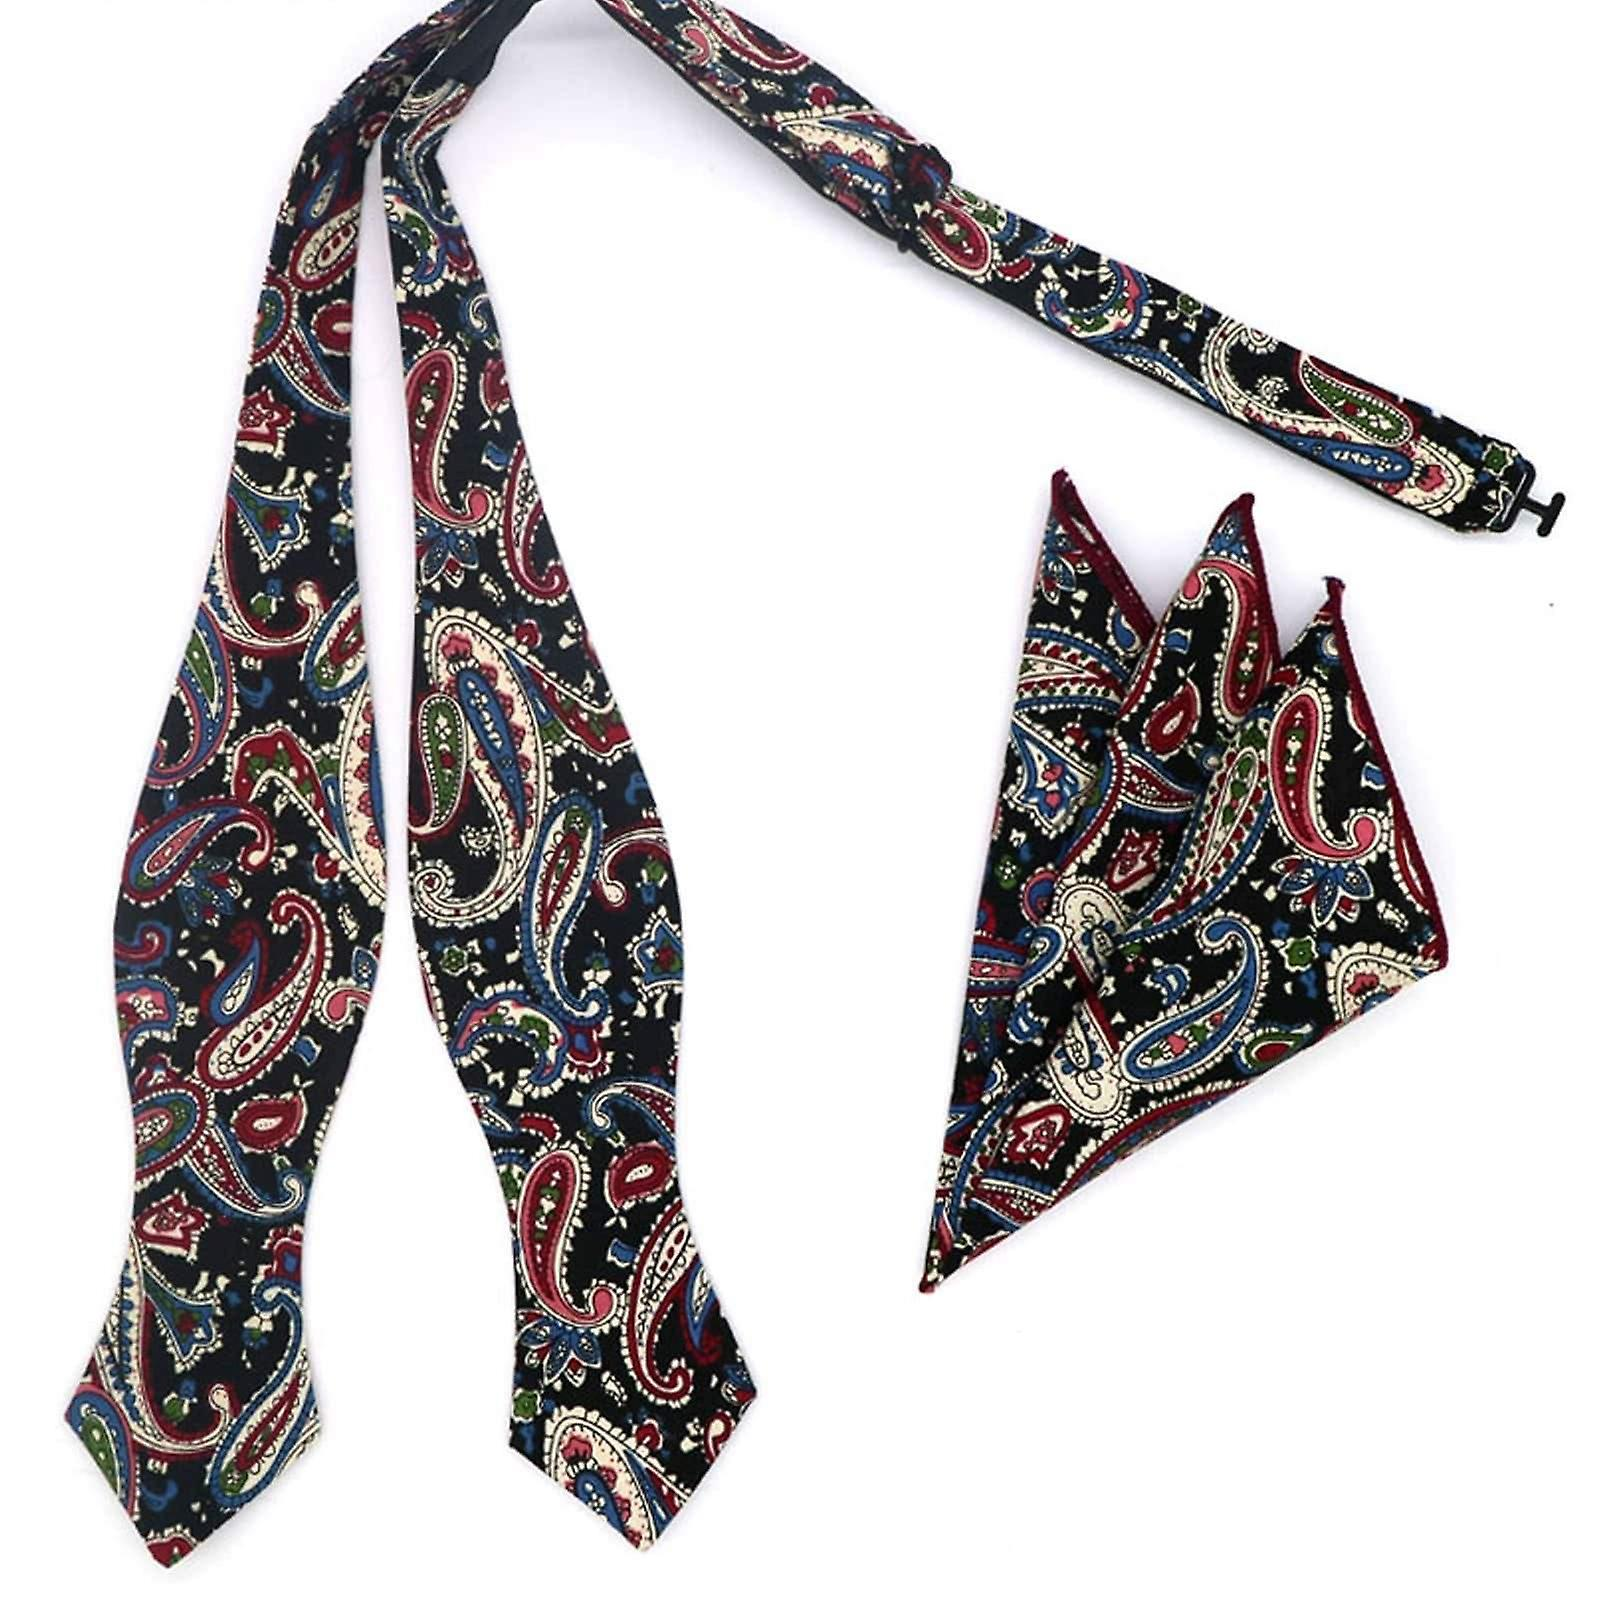 Black & blue paisley butterfly bow tie & pocket square